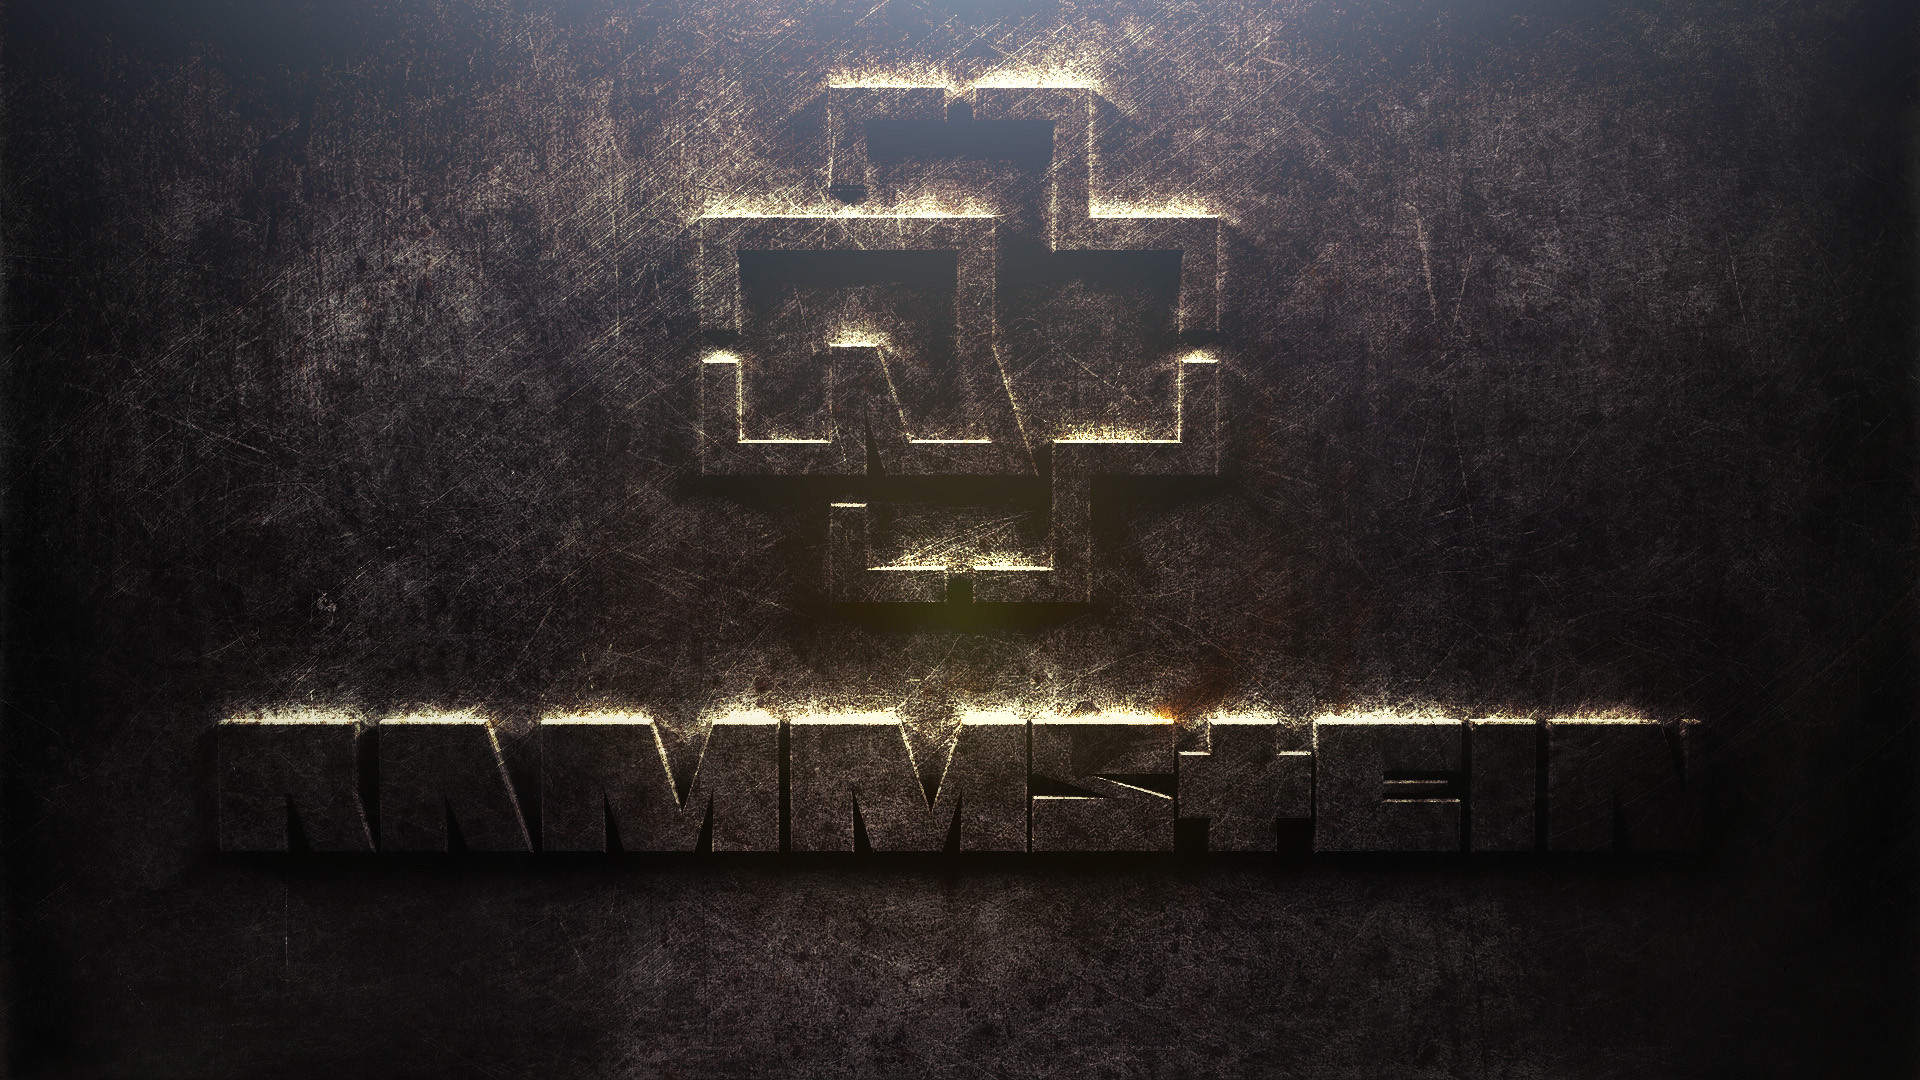 1920x1080 Rammstein Wallpapers Wallpapers High Quality | Download Free